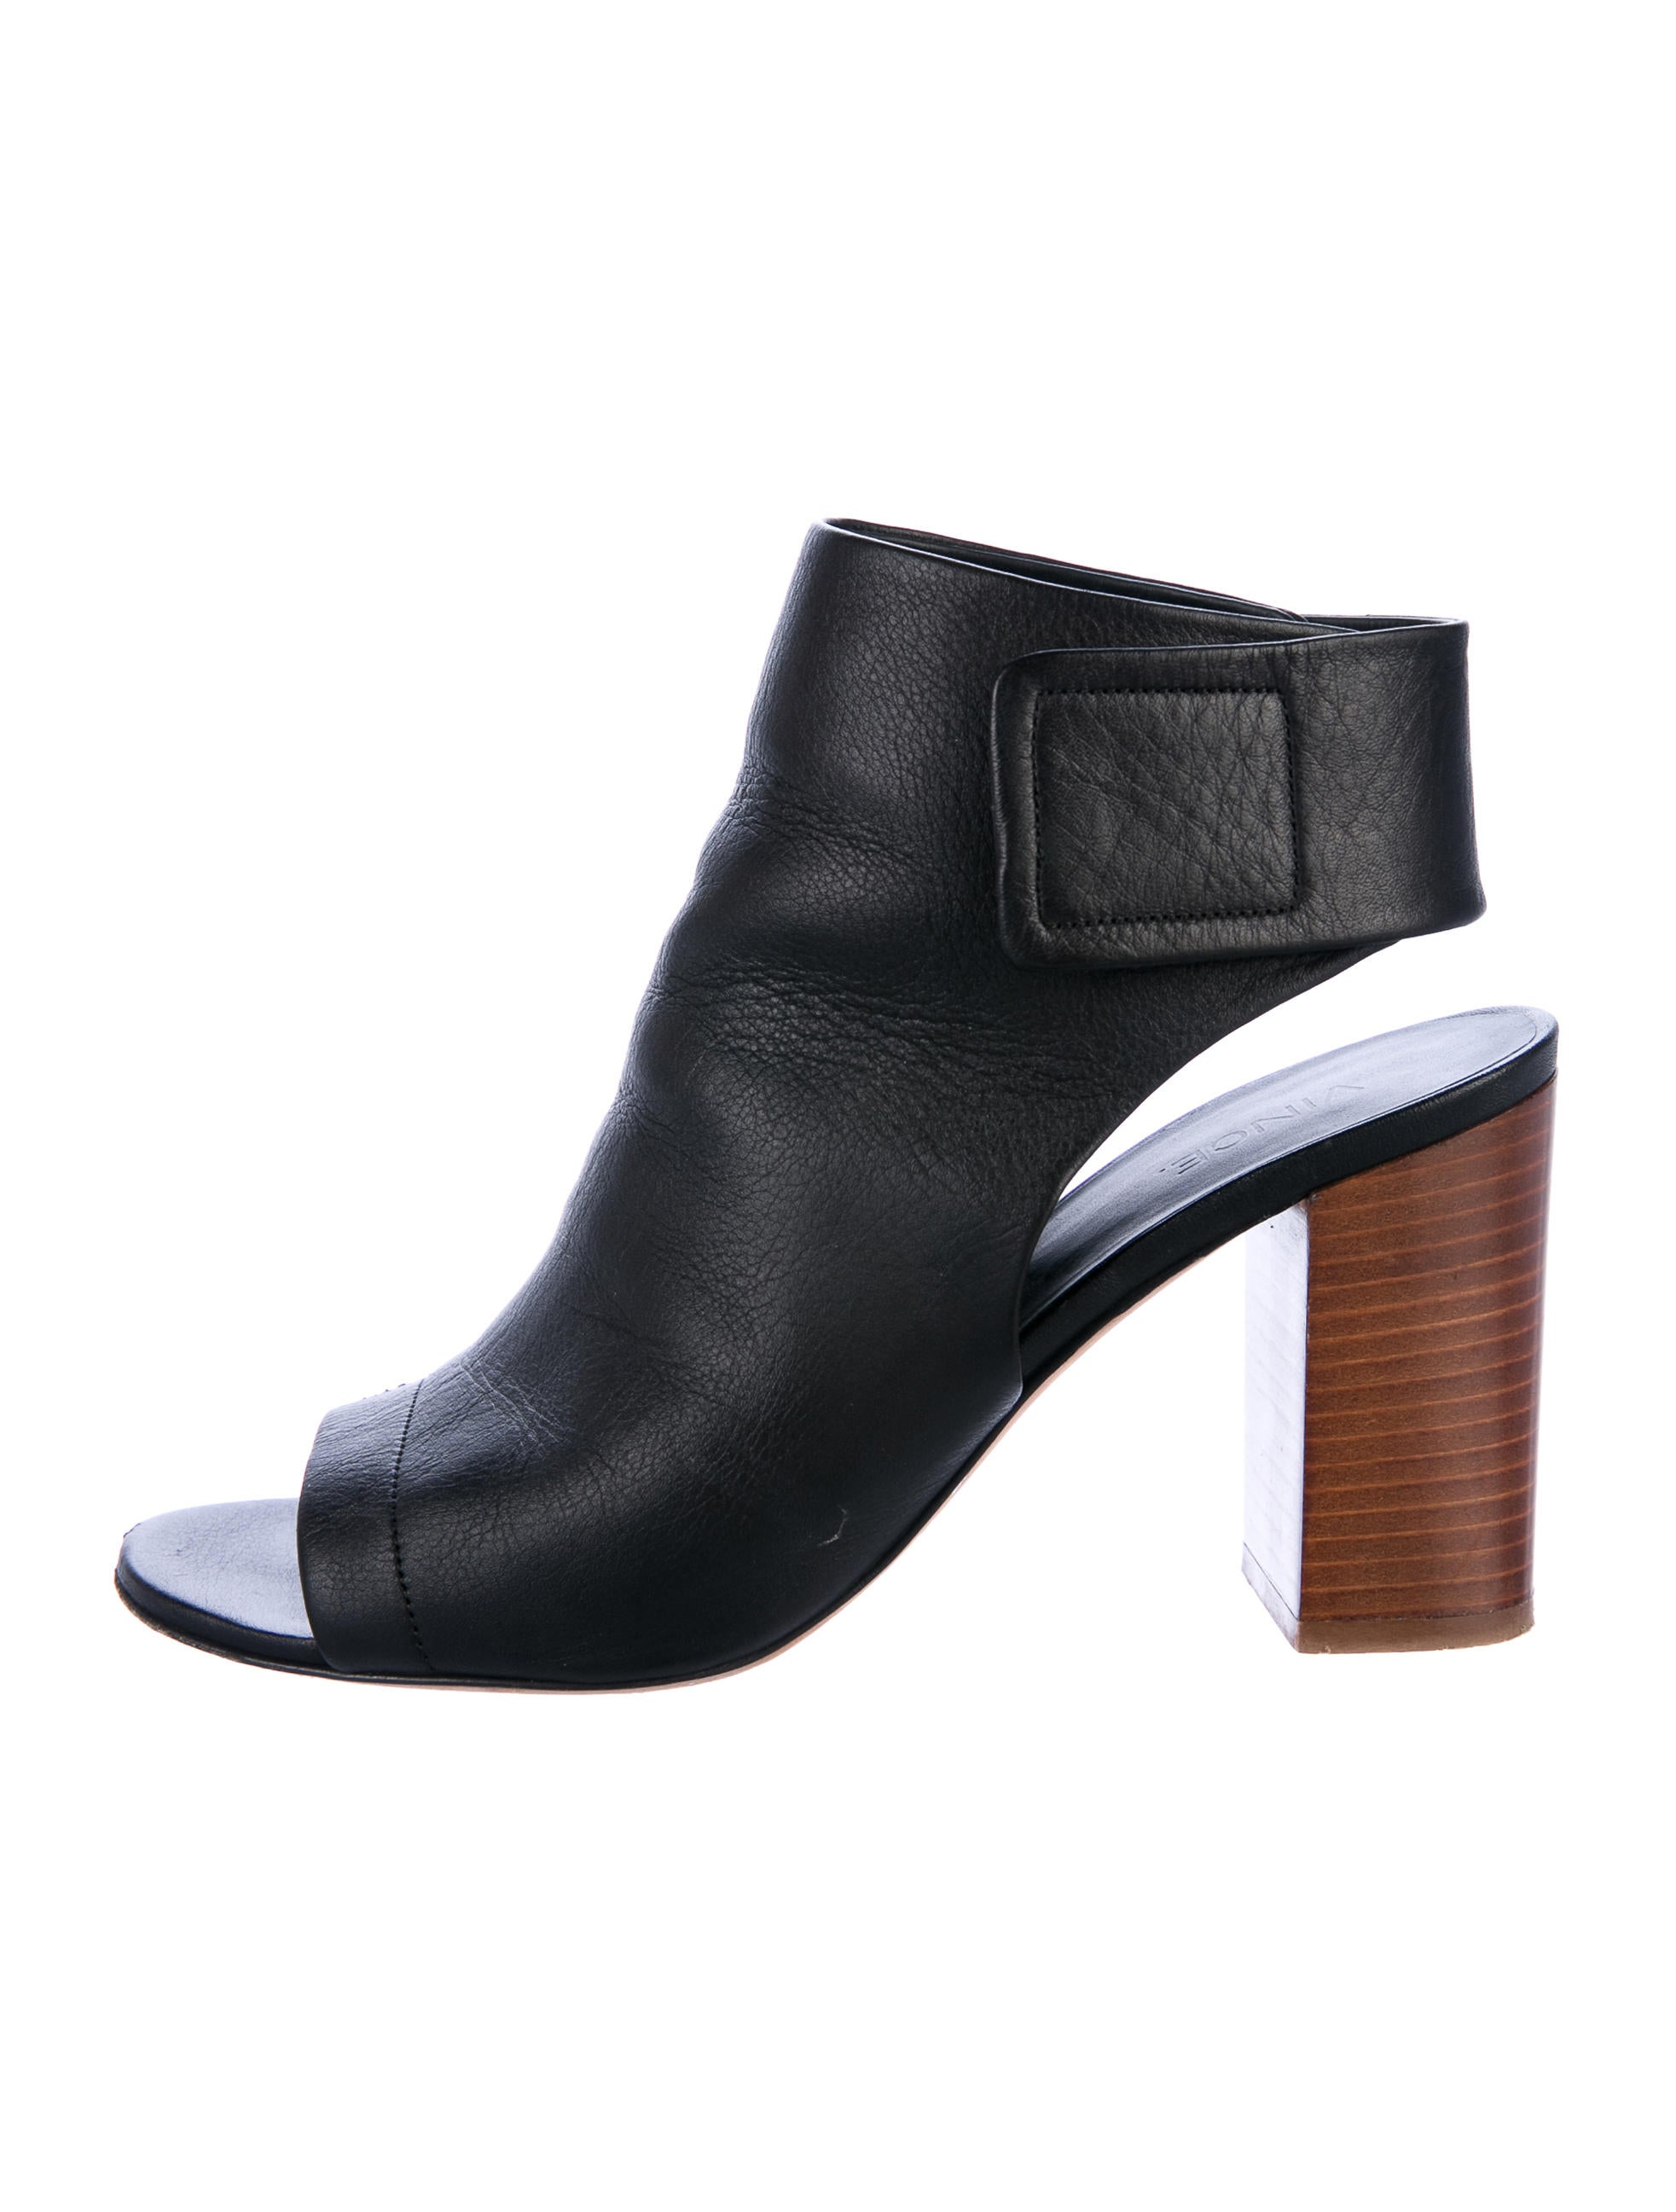 Details about Lucky Brand Womens Kalli Leather Open Toe Ankle Fashion Boots. Lucky Brand Womens Kalli Leather Open Toe Ankle Fashion Boots | Add to watch list. Find out more about the Top-rated seller program - opens in a new window or tab. pairmysole. % Positive feedback.